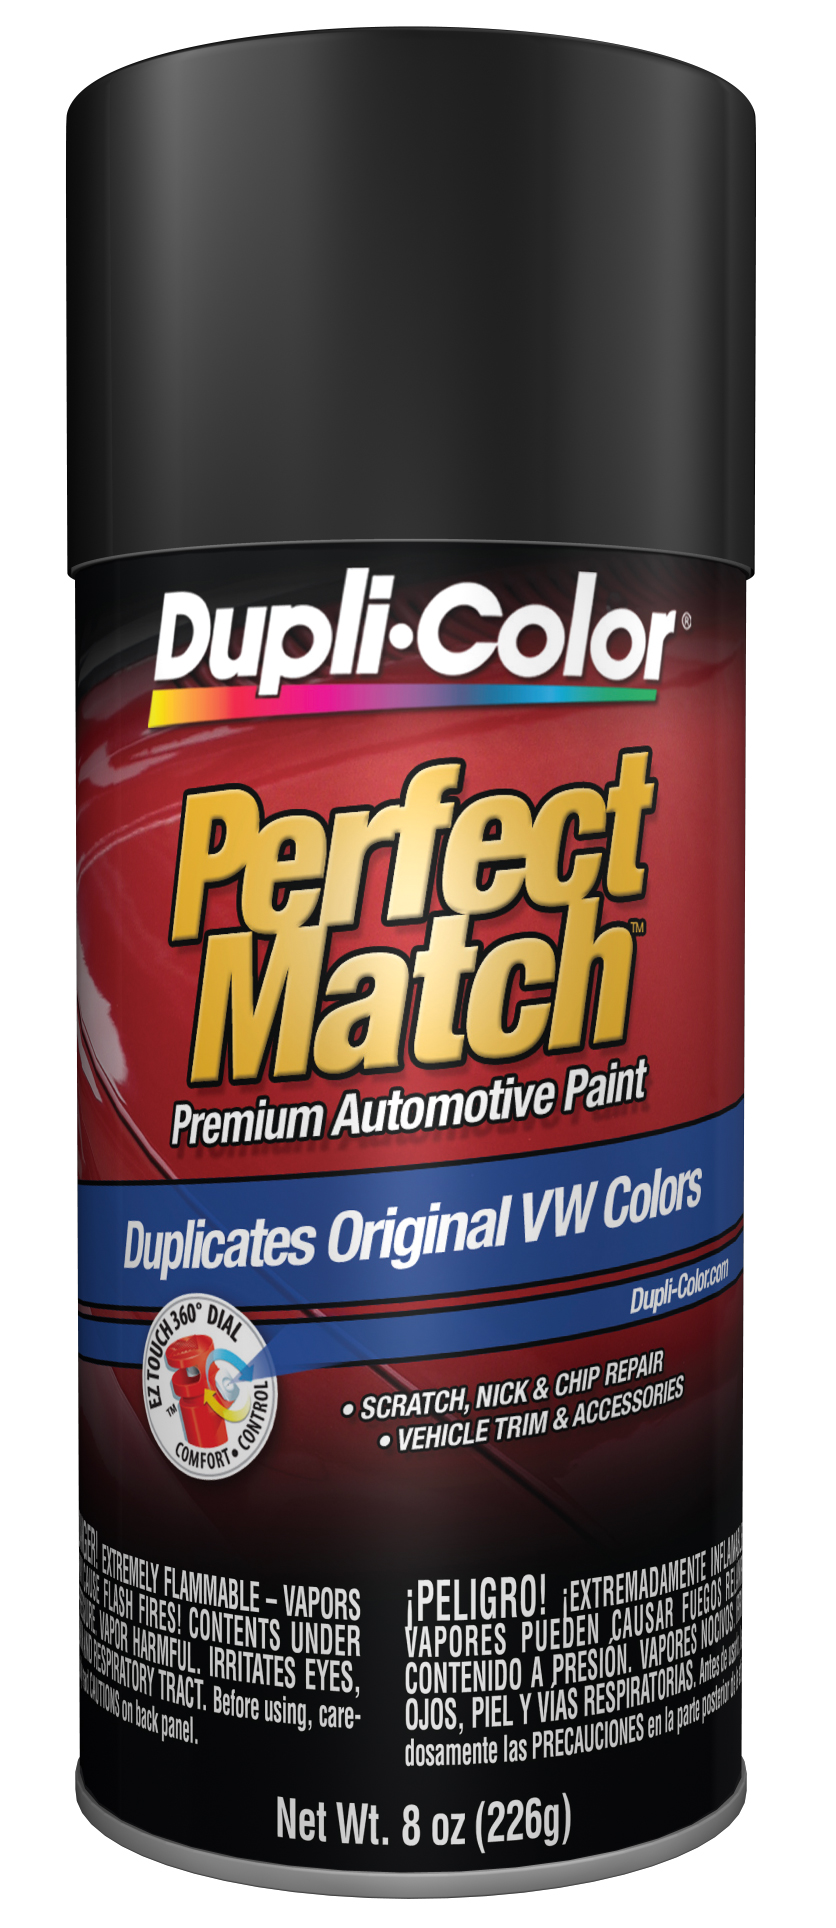 Porsche Amp Volkswagen Black Magic Auto Spray Paint Lc9z